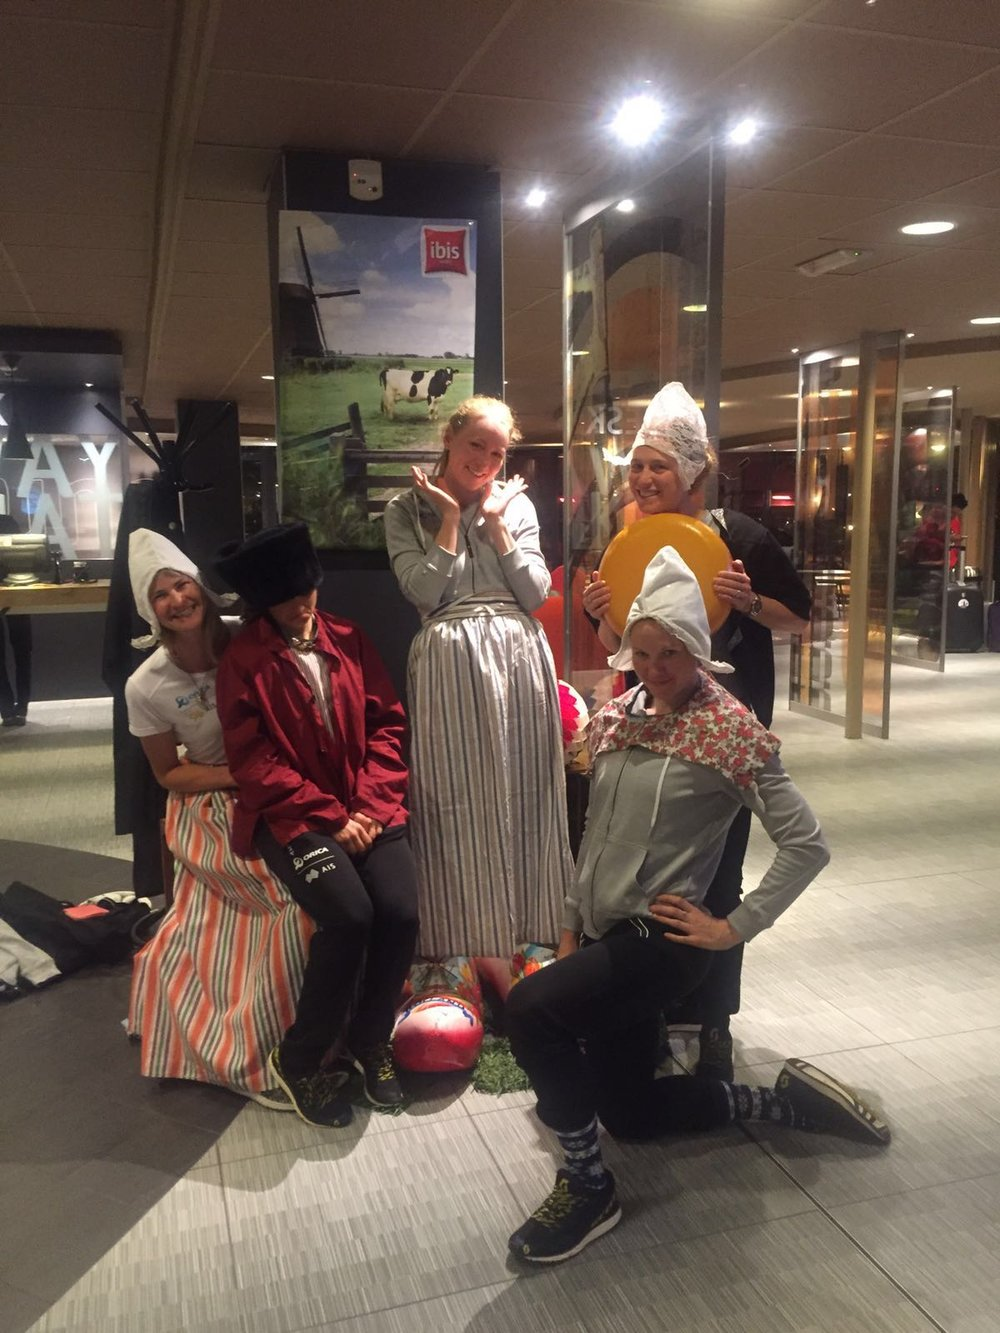 I'll miss these kind of antics with my OGEFrocks. Things you get up to in Ibis Budget Hotels post races.